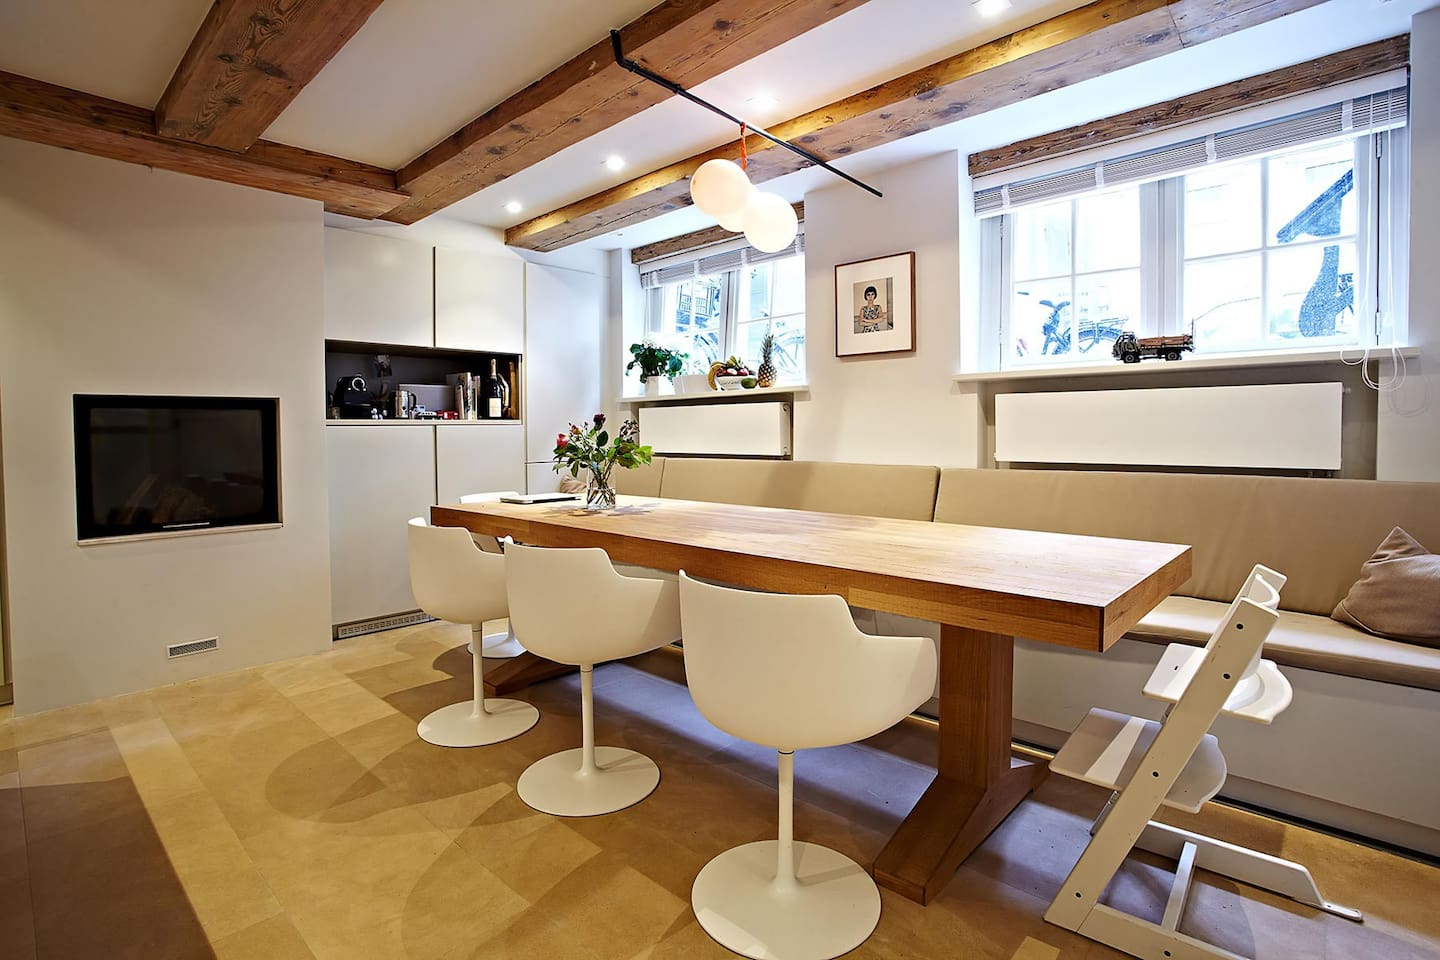 Soutterain open kitchen with dinning table